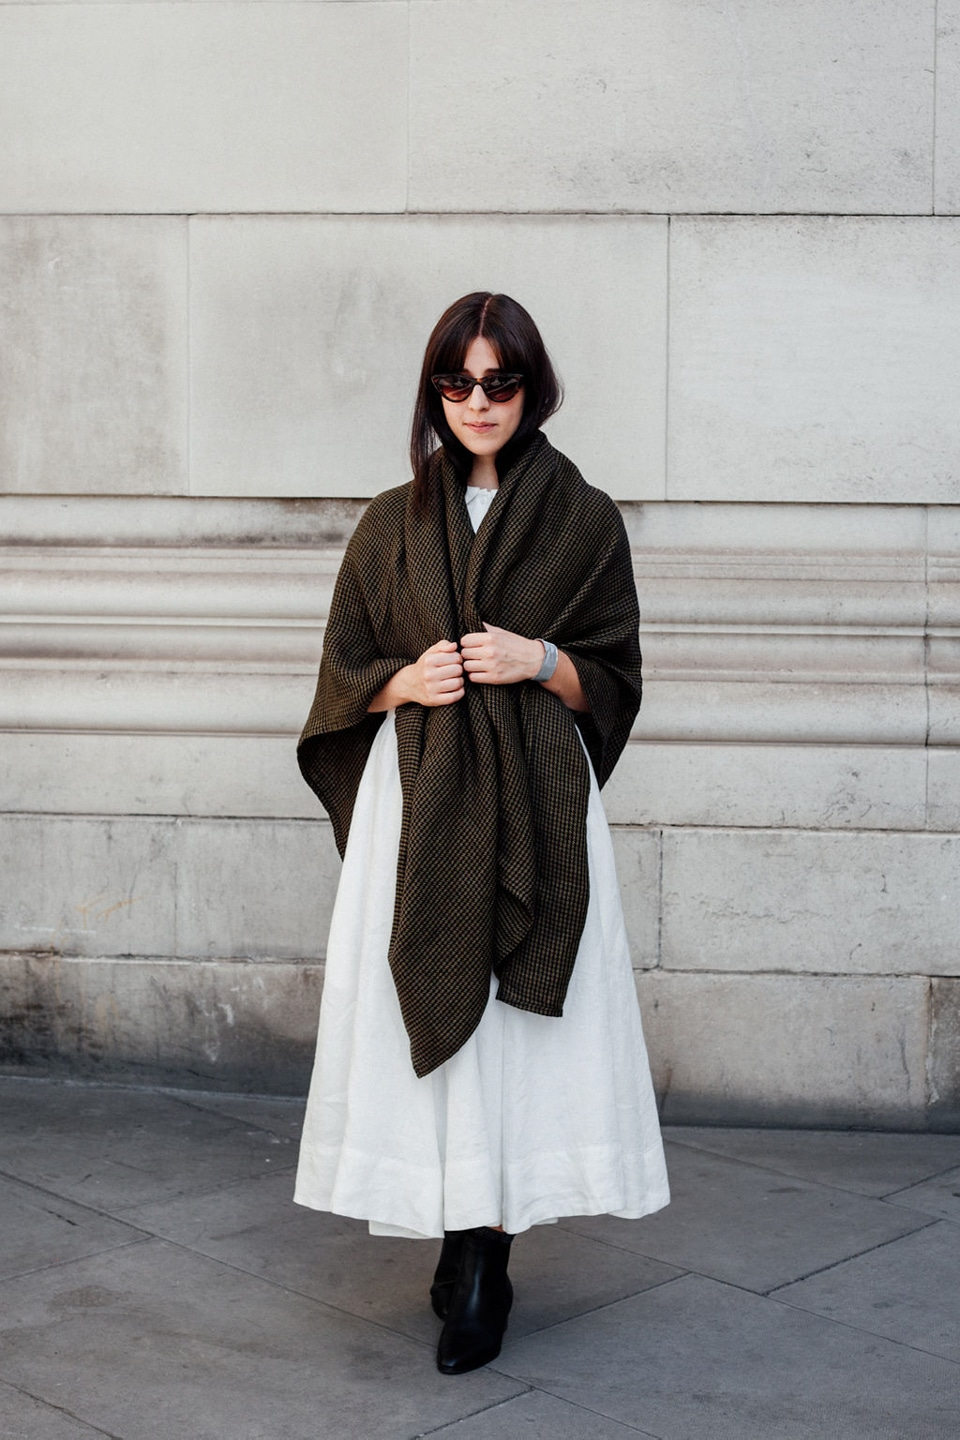 Besma wears white dress with brown shawl and sunglasses